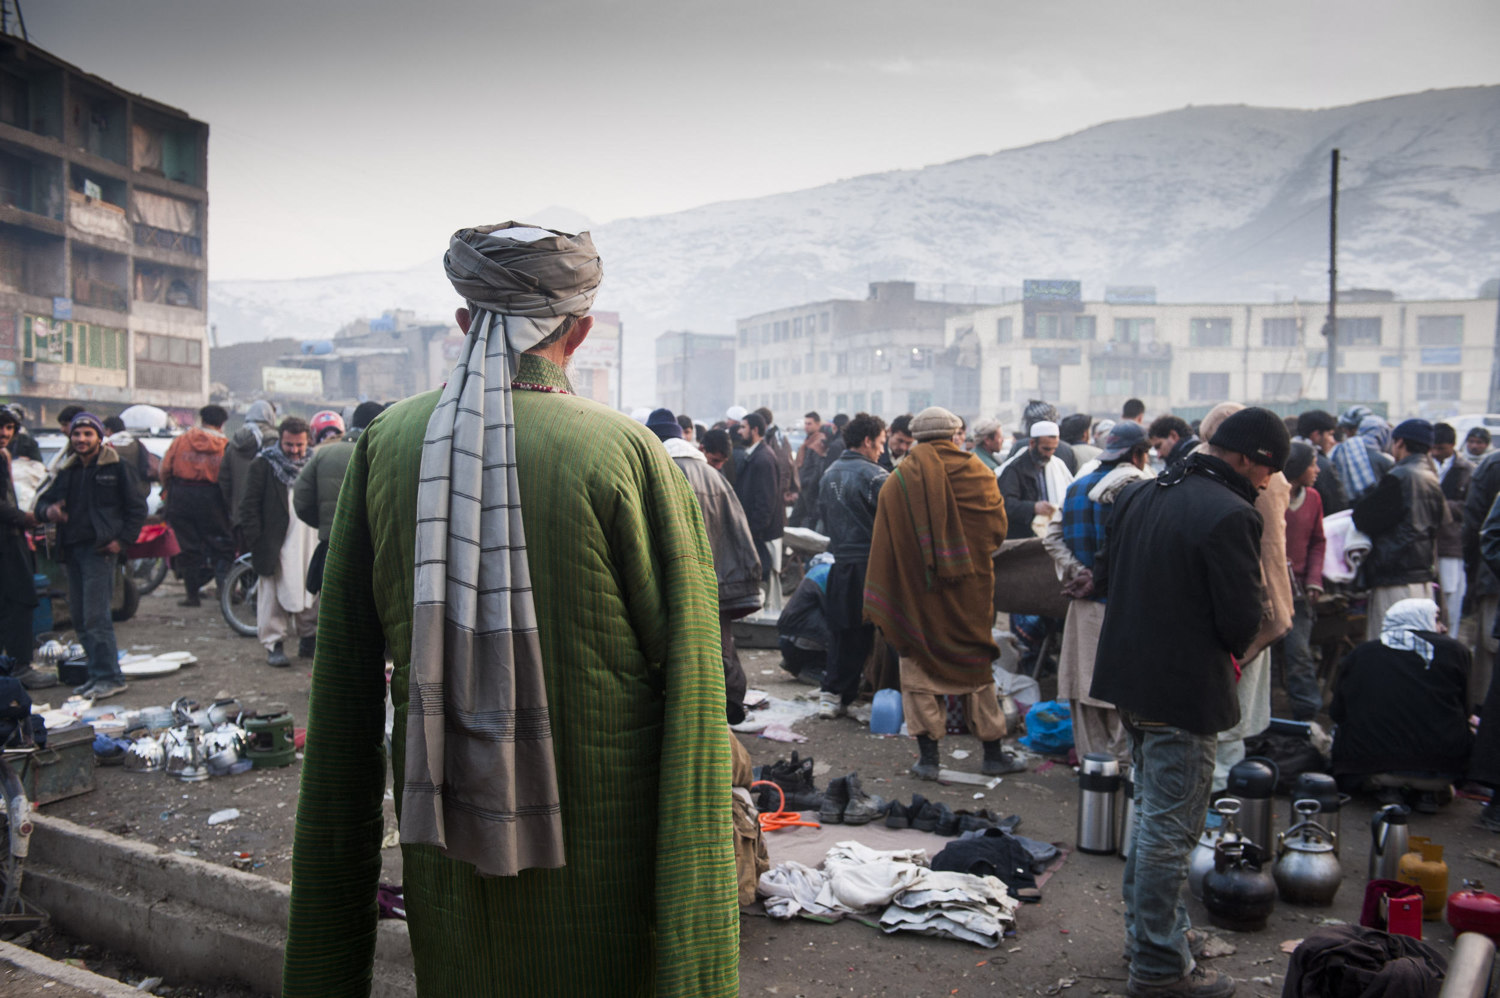 A man in traditional dress in a market in downtown Kabul. Most markets are unorganized and unregulated in Kabul as many salesmen cannot afford shops.